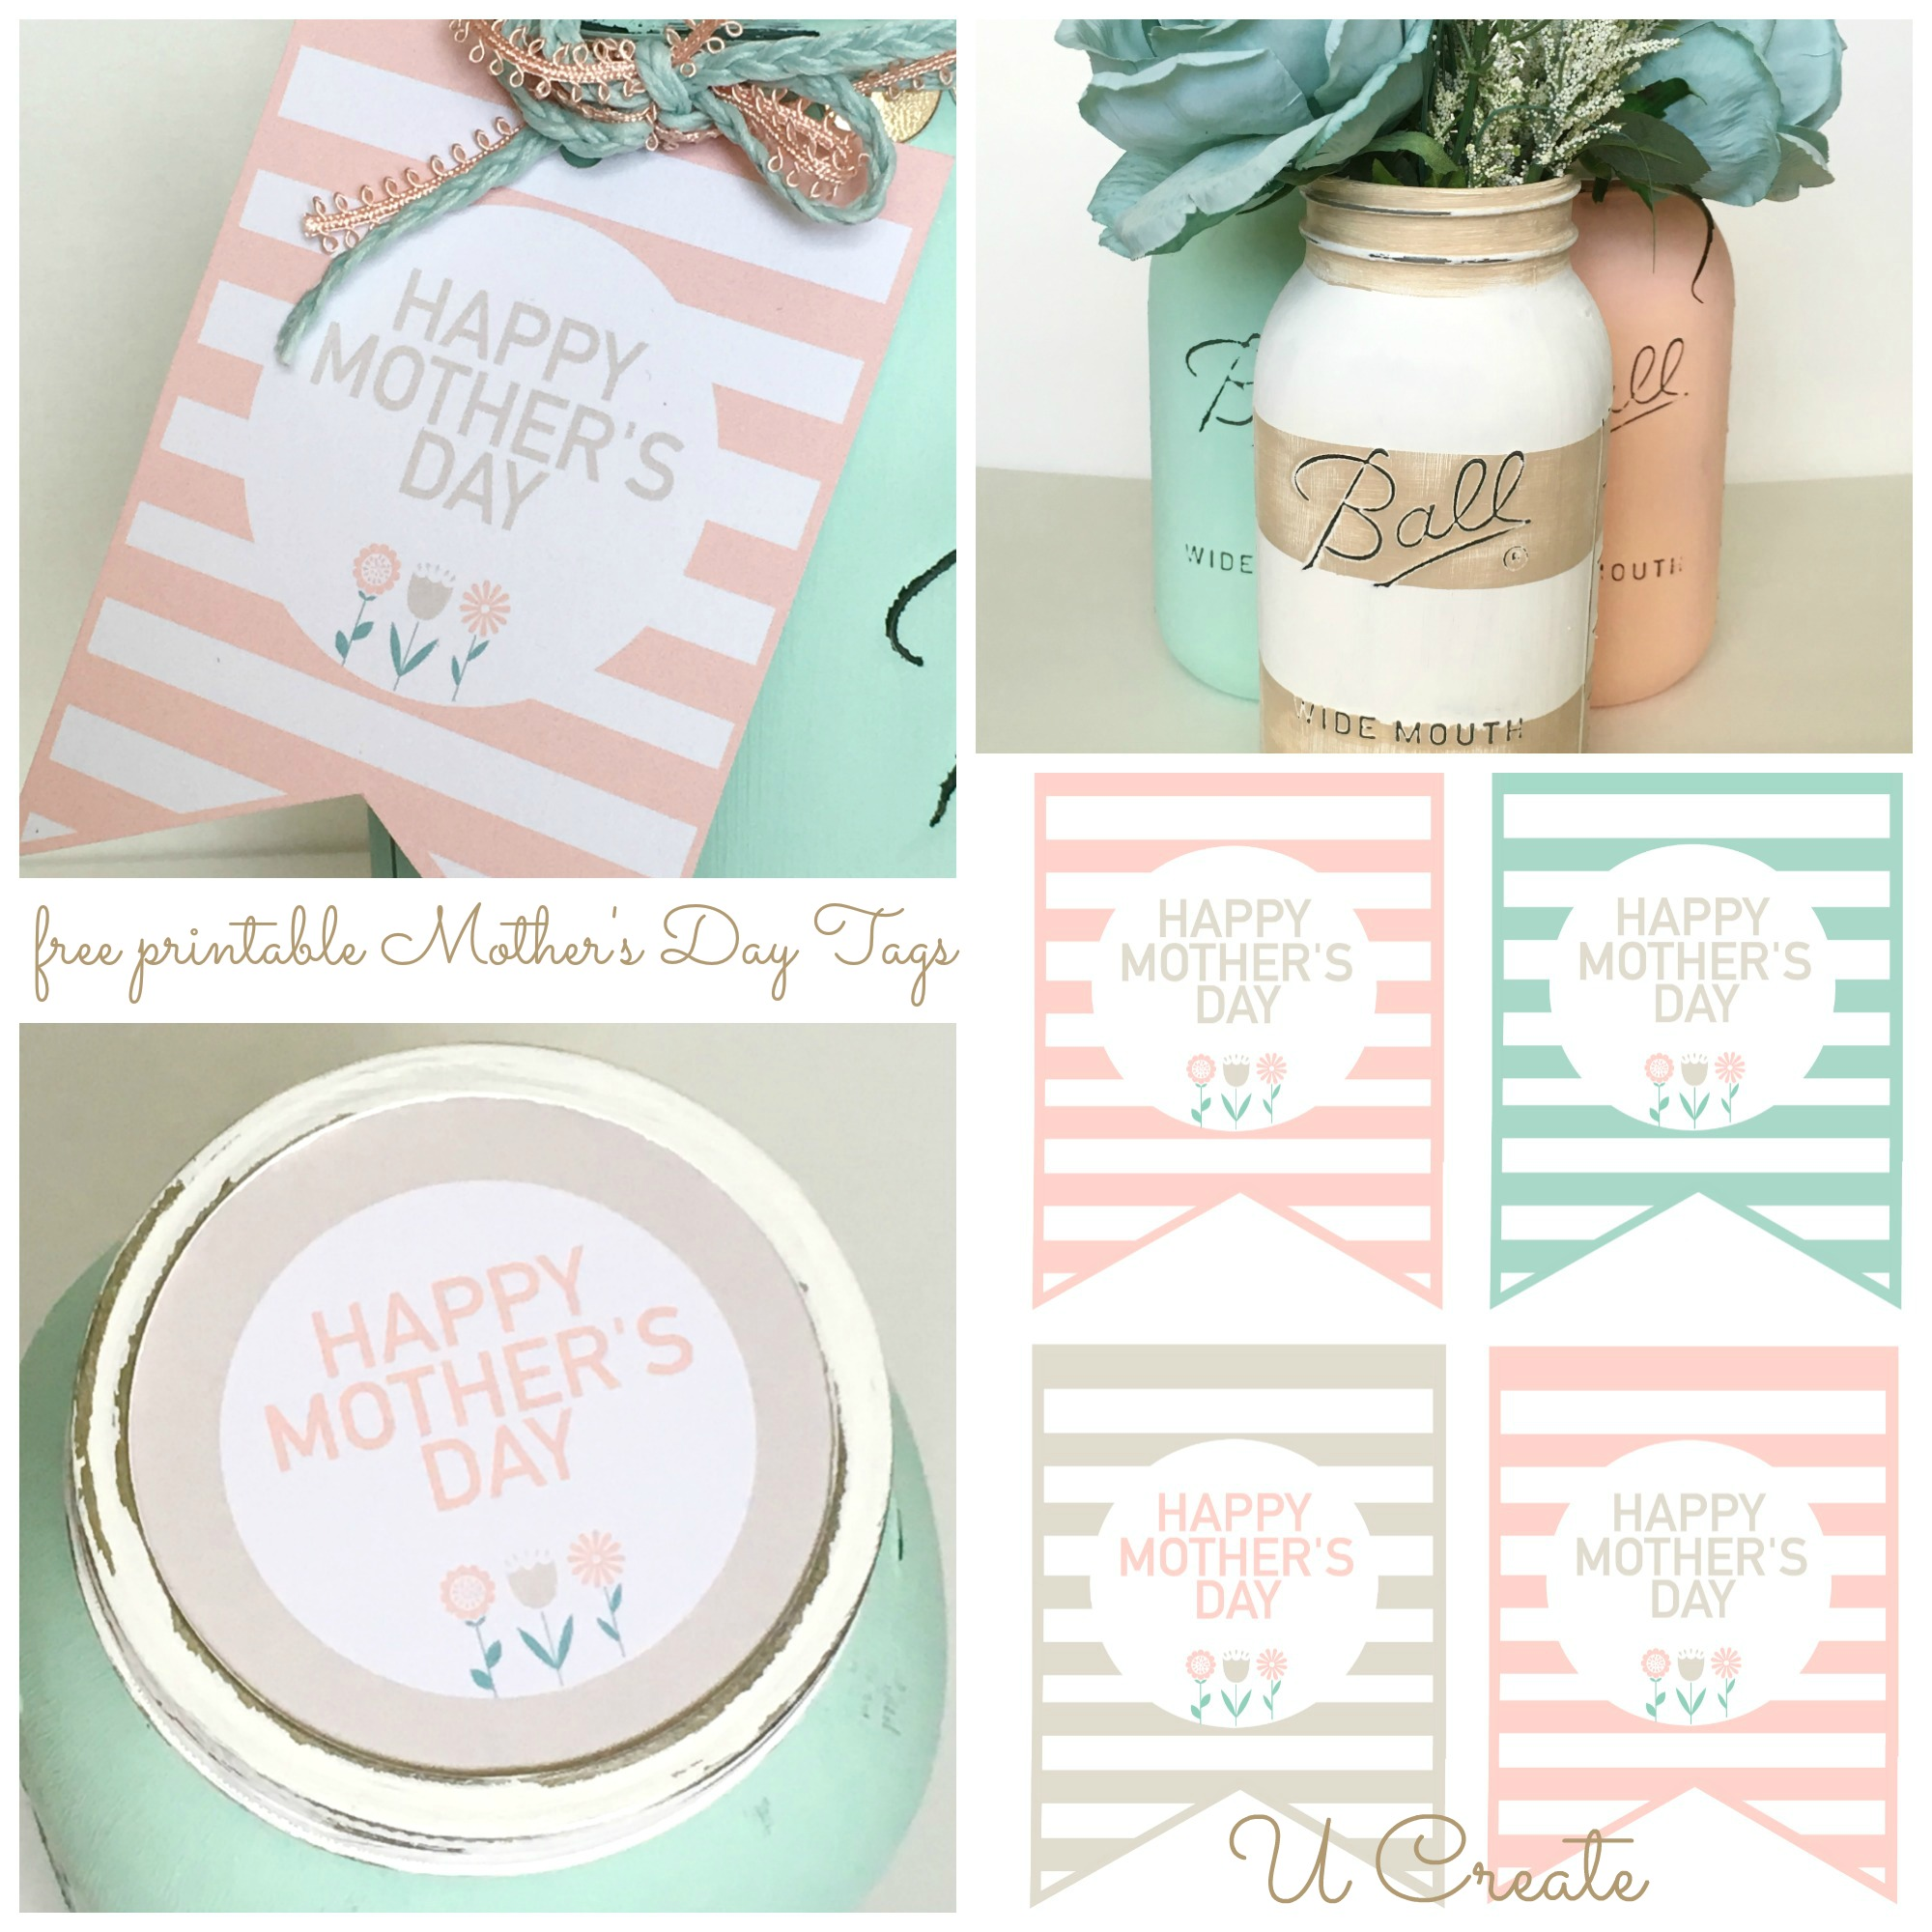 Free Printable Mother's Day Tags (and lid covers) by U Create